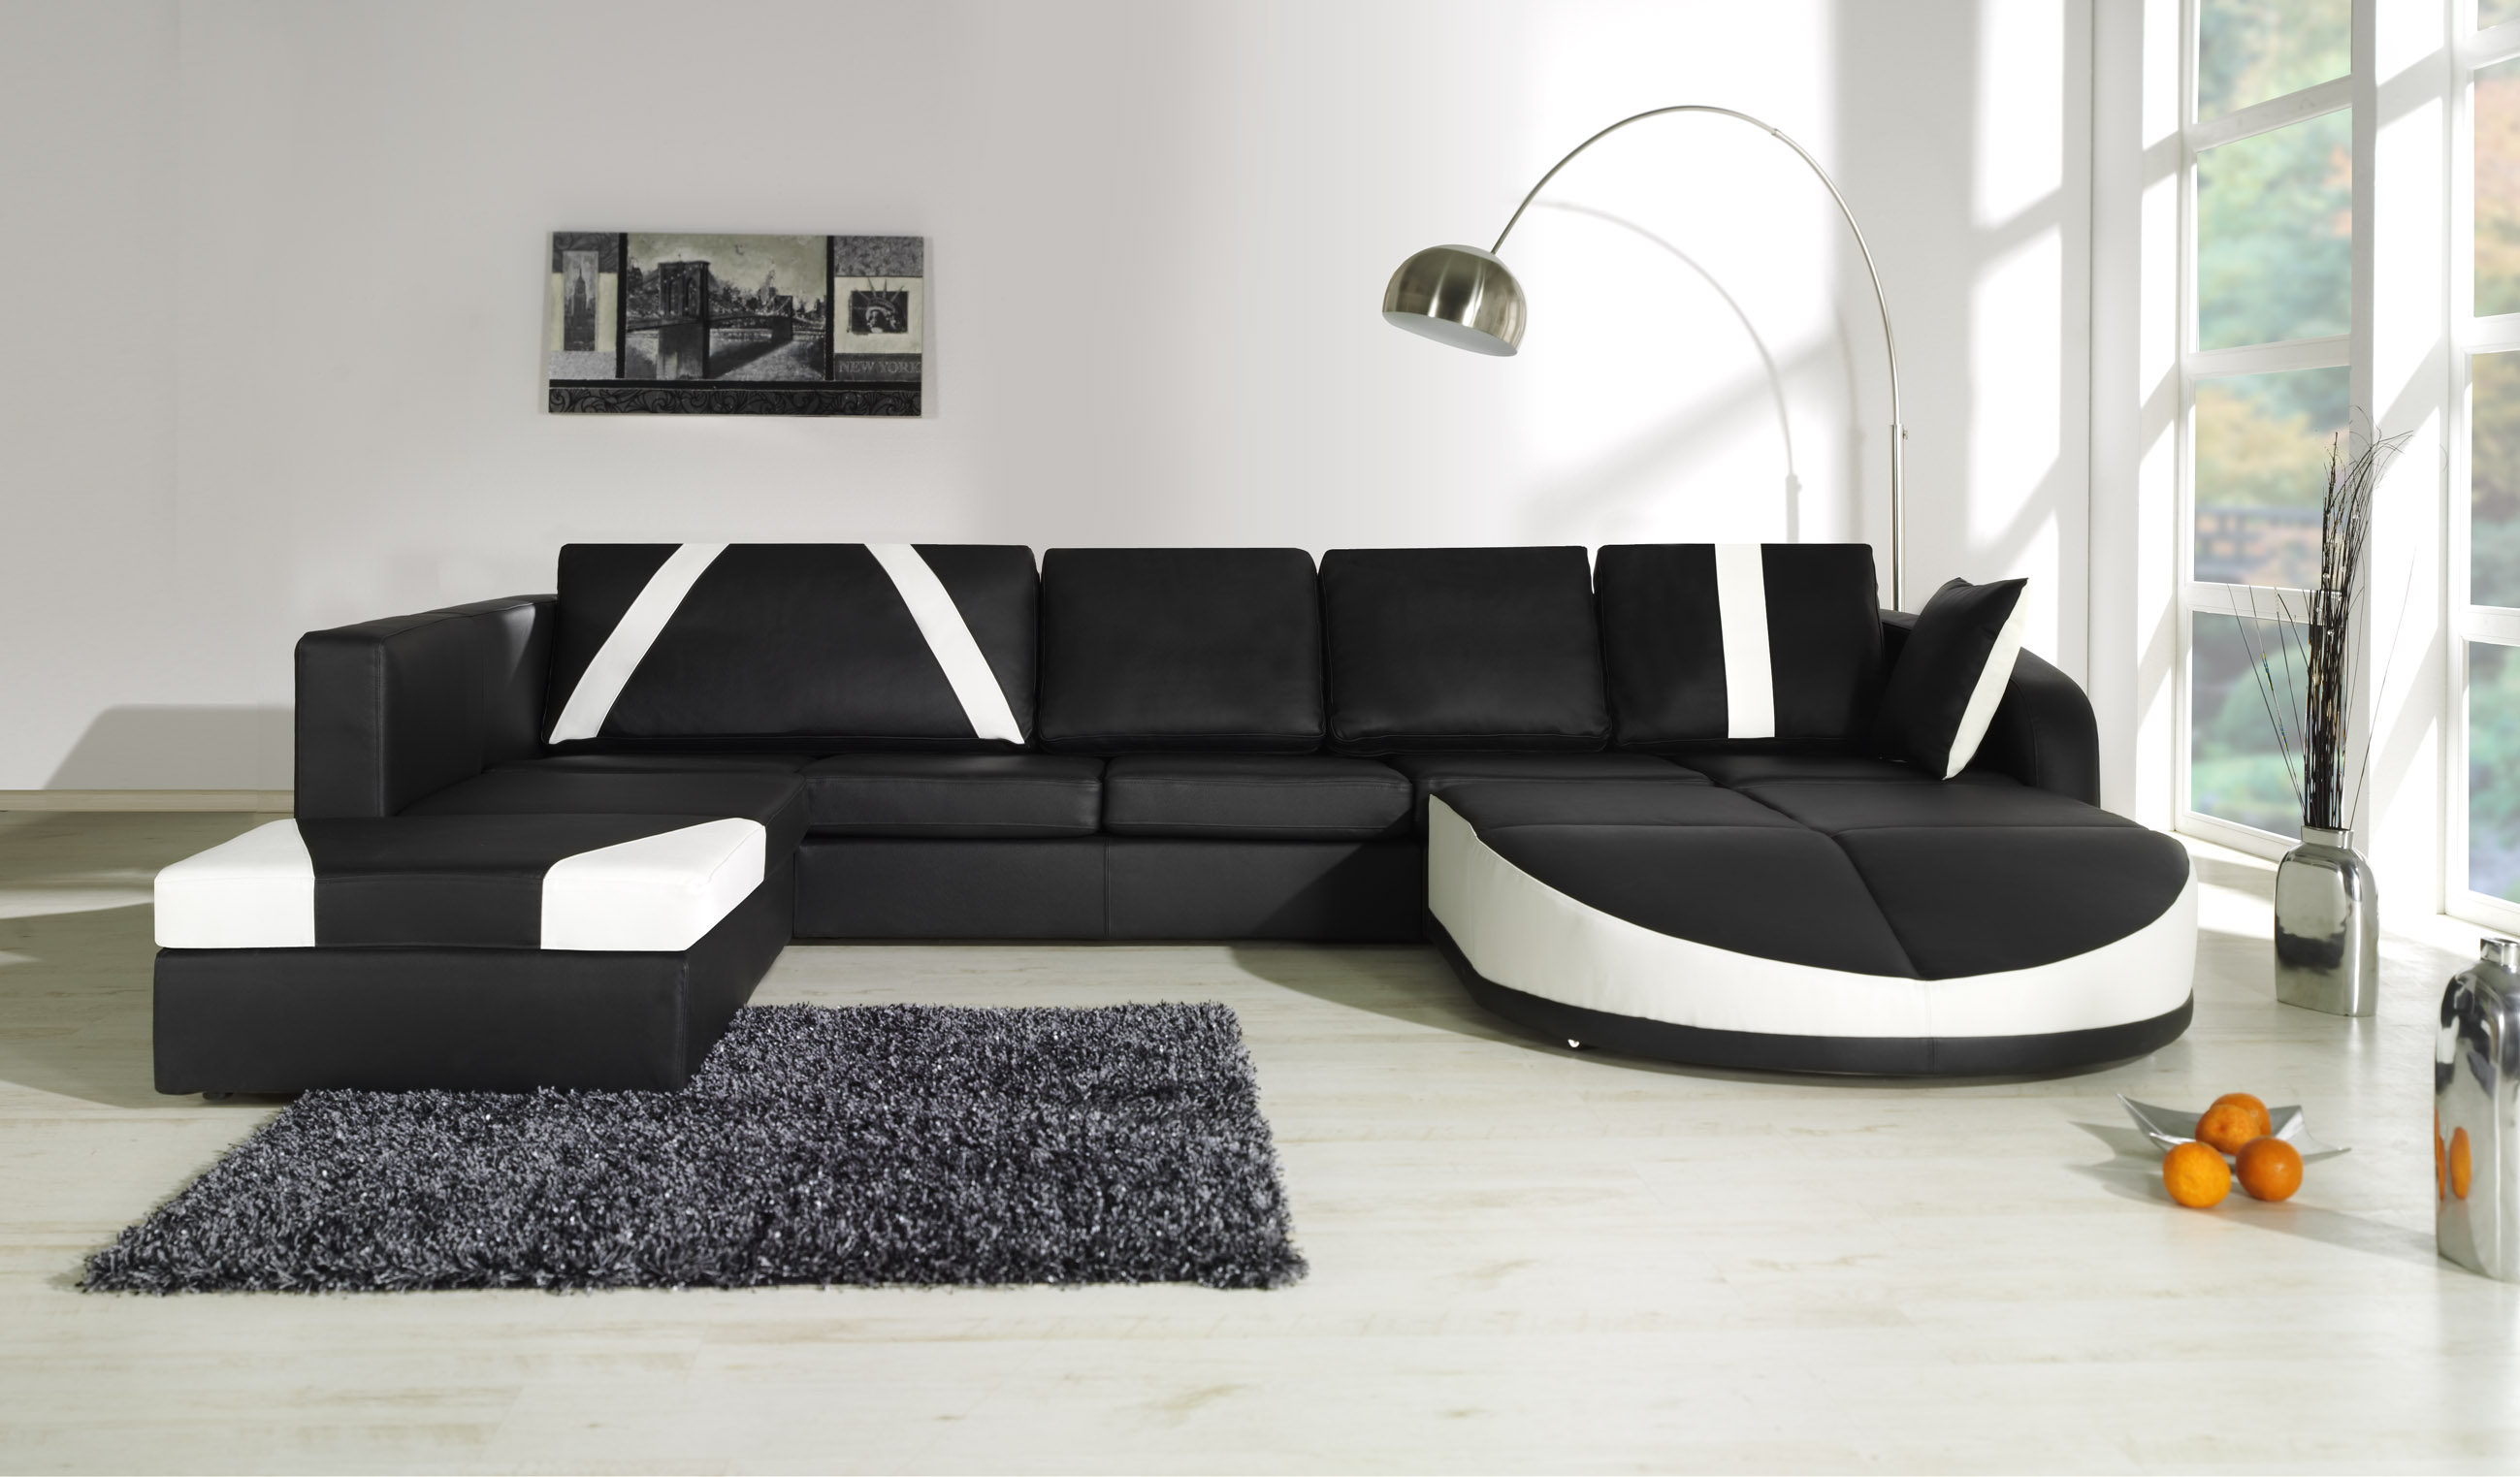 canap en cuir pas cher royal sofa id e de canap et. Black Bedroom Furniture Sets. Home Design Ideas